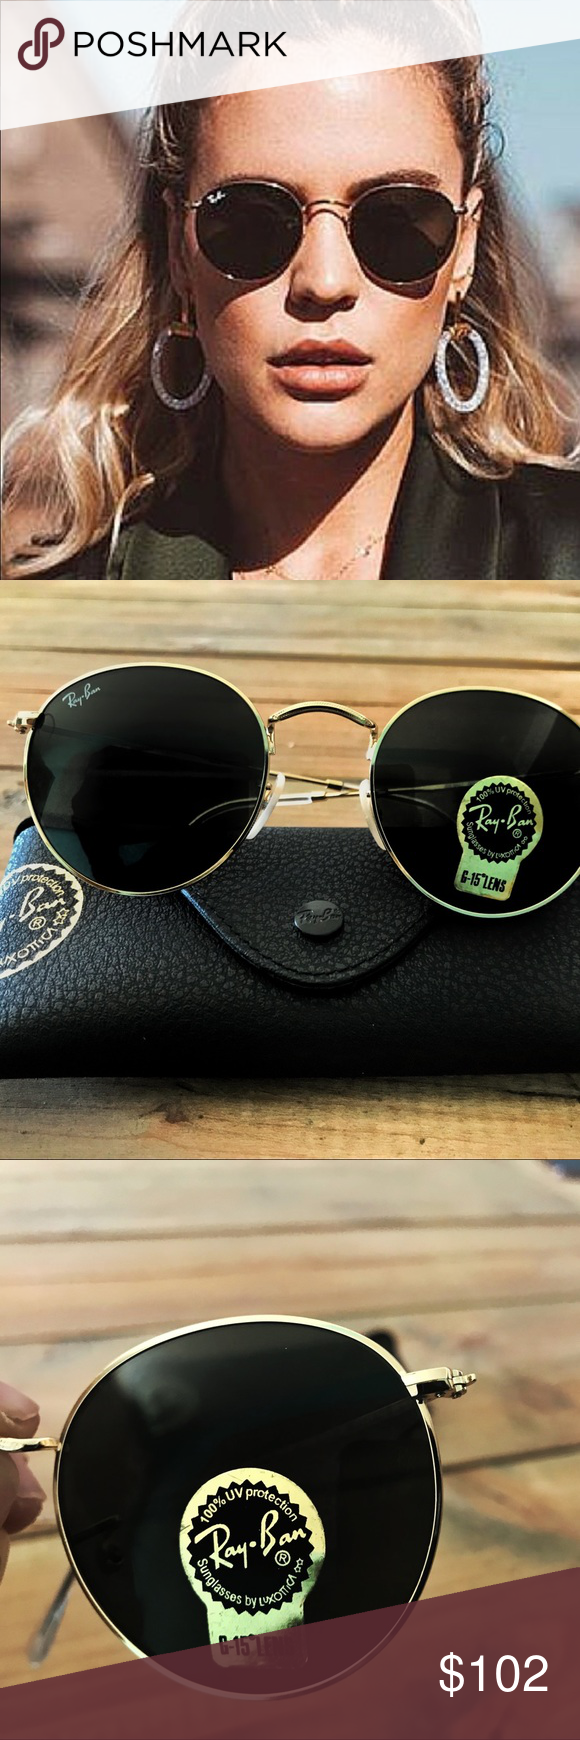 4d262e0382b5dd New RayBan Round Dark Green Lens 50mm (NWT) RayBan RB3447 001 50mm New RayBan  Round Dark Green Lens 50mm (NWT)  153 retail+ Don t be a low baller!